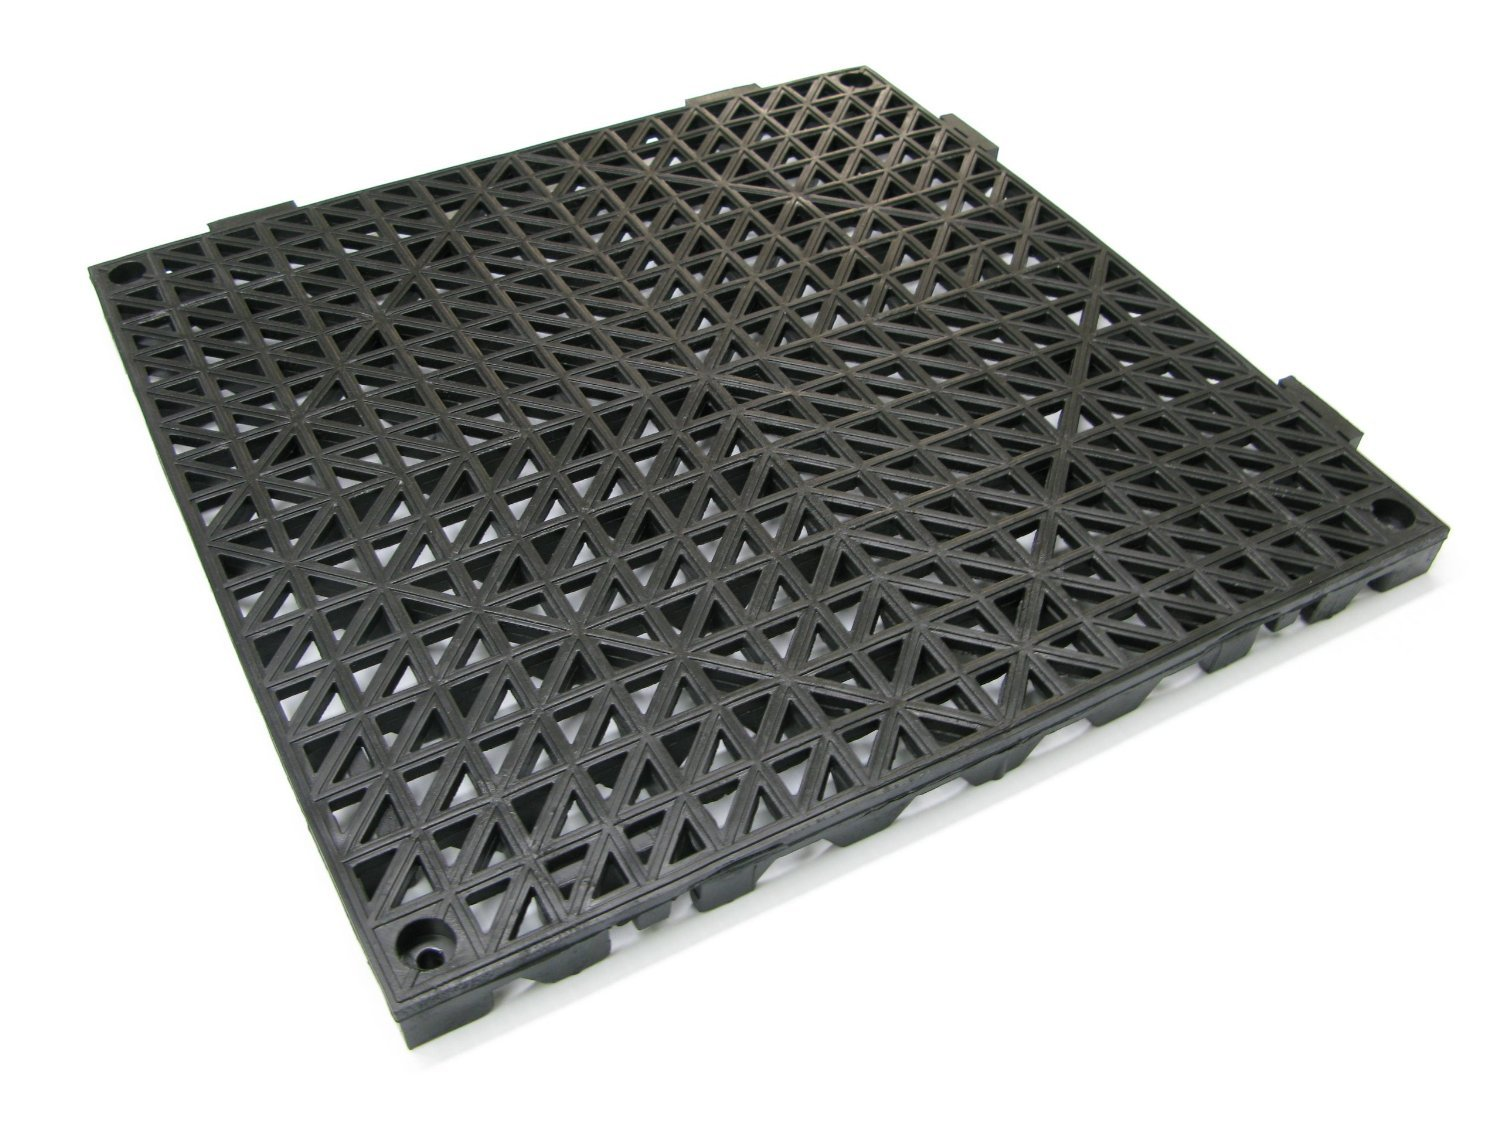 American Floor Mats 12'' x 12'' x 3/4'' PVC Safety Shower Lab Tile Black 4 Pack - 2' x 2' area